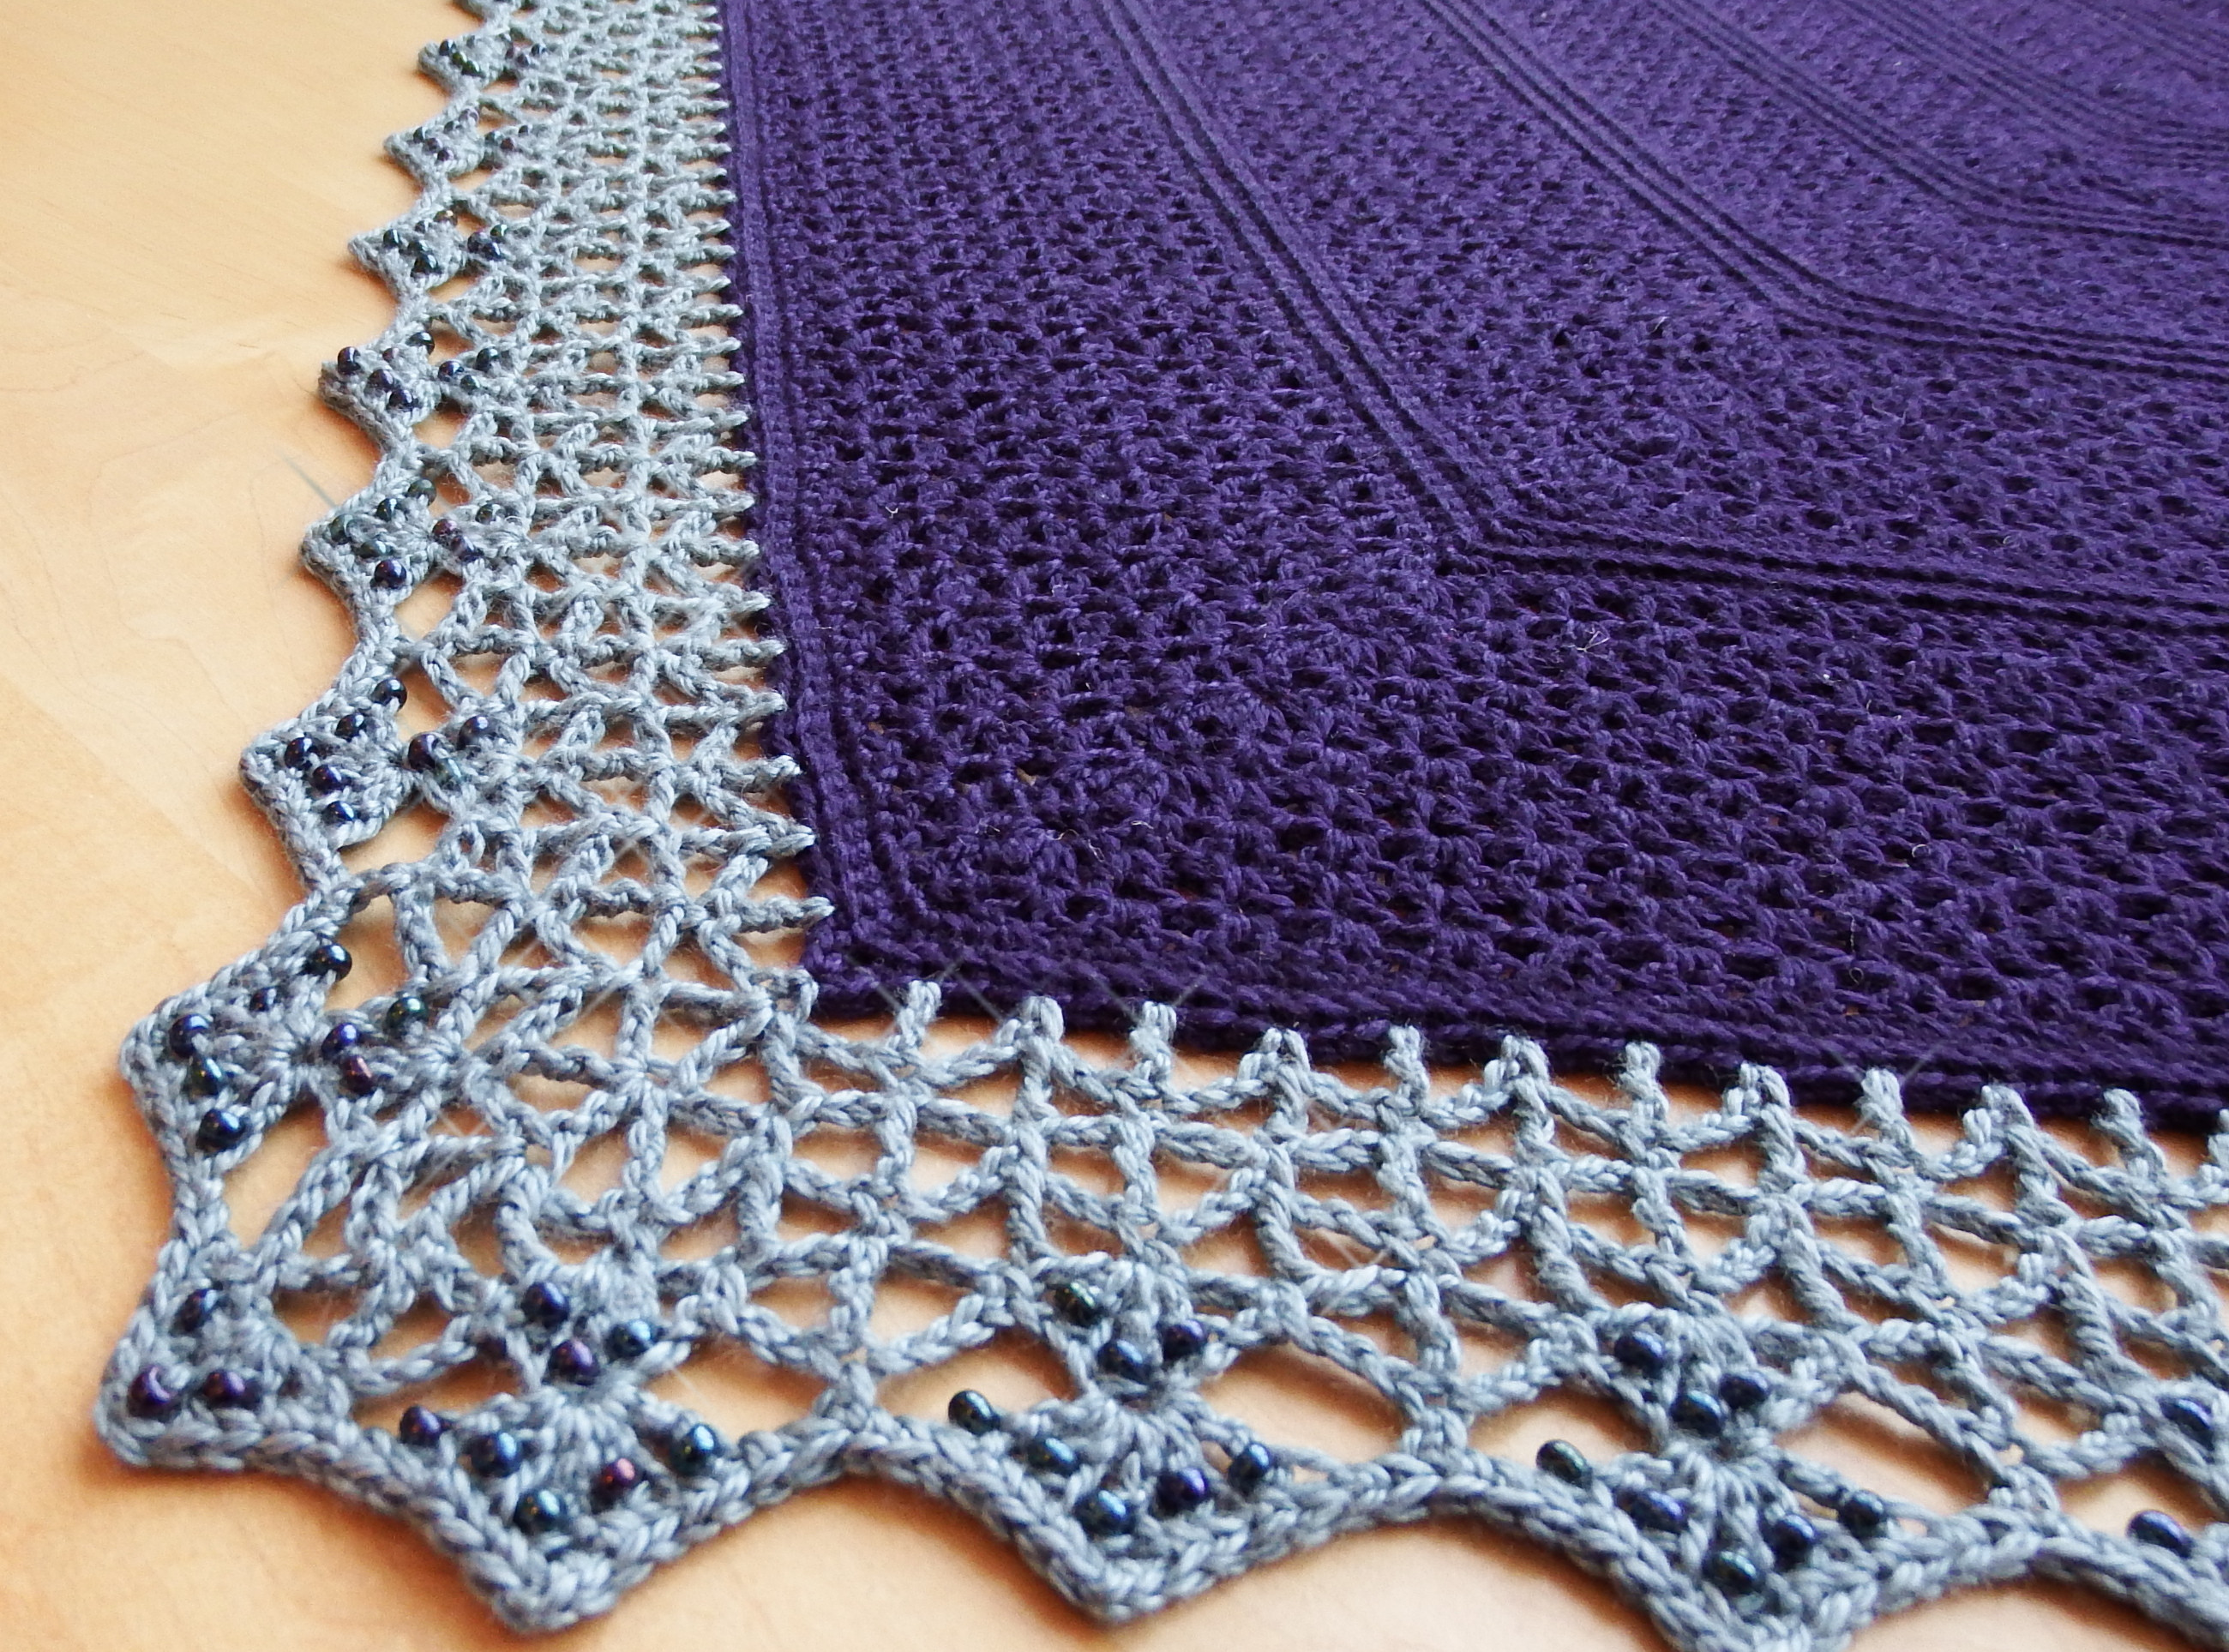 Lace Edging Awesome Free Crochet Edging Patterns for Shawls Of Incredible 44 Ideas Lace Edging